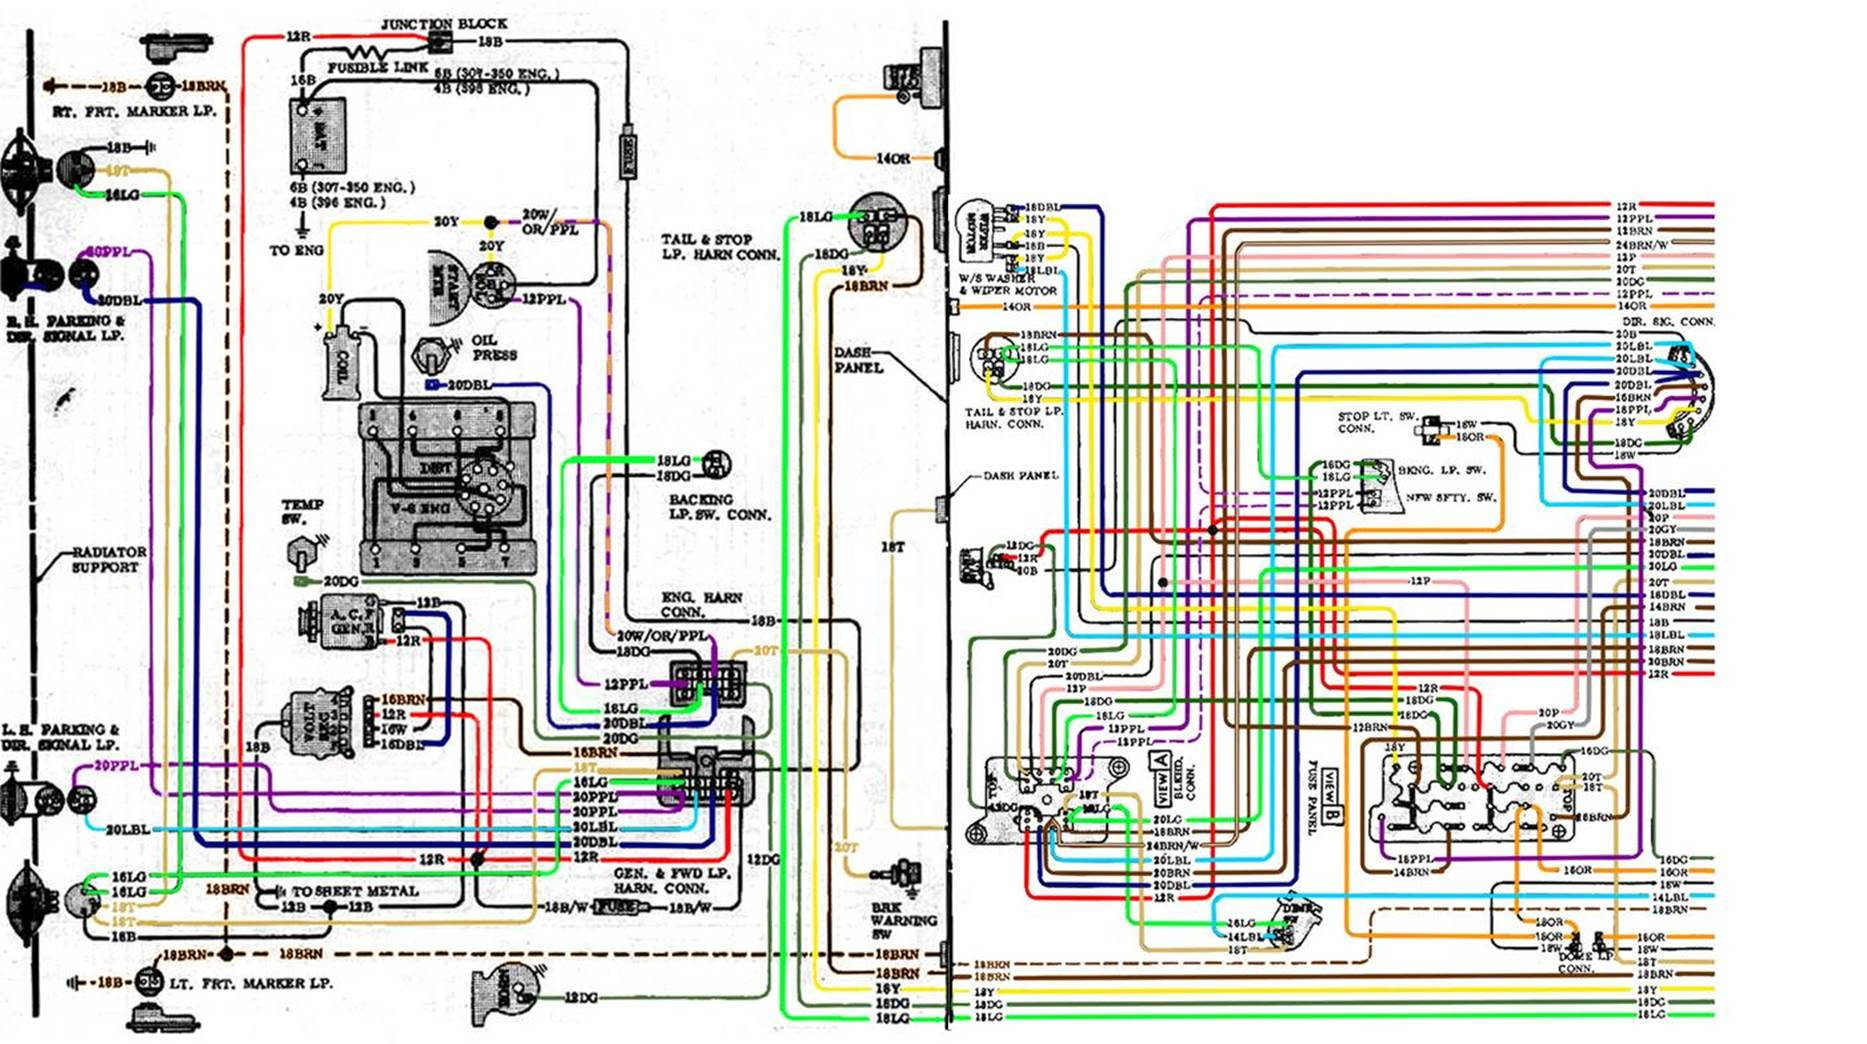 1967 C30 Wiring Diagram Another Blog About 1964 Ford Econoline Van 67 72 Chevy Rh Outintheshop Com